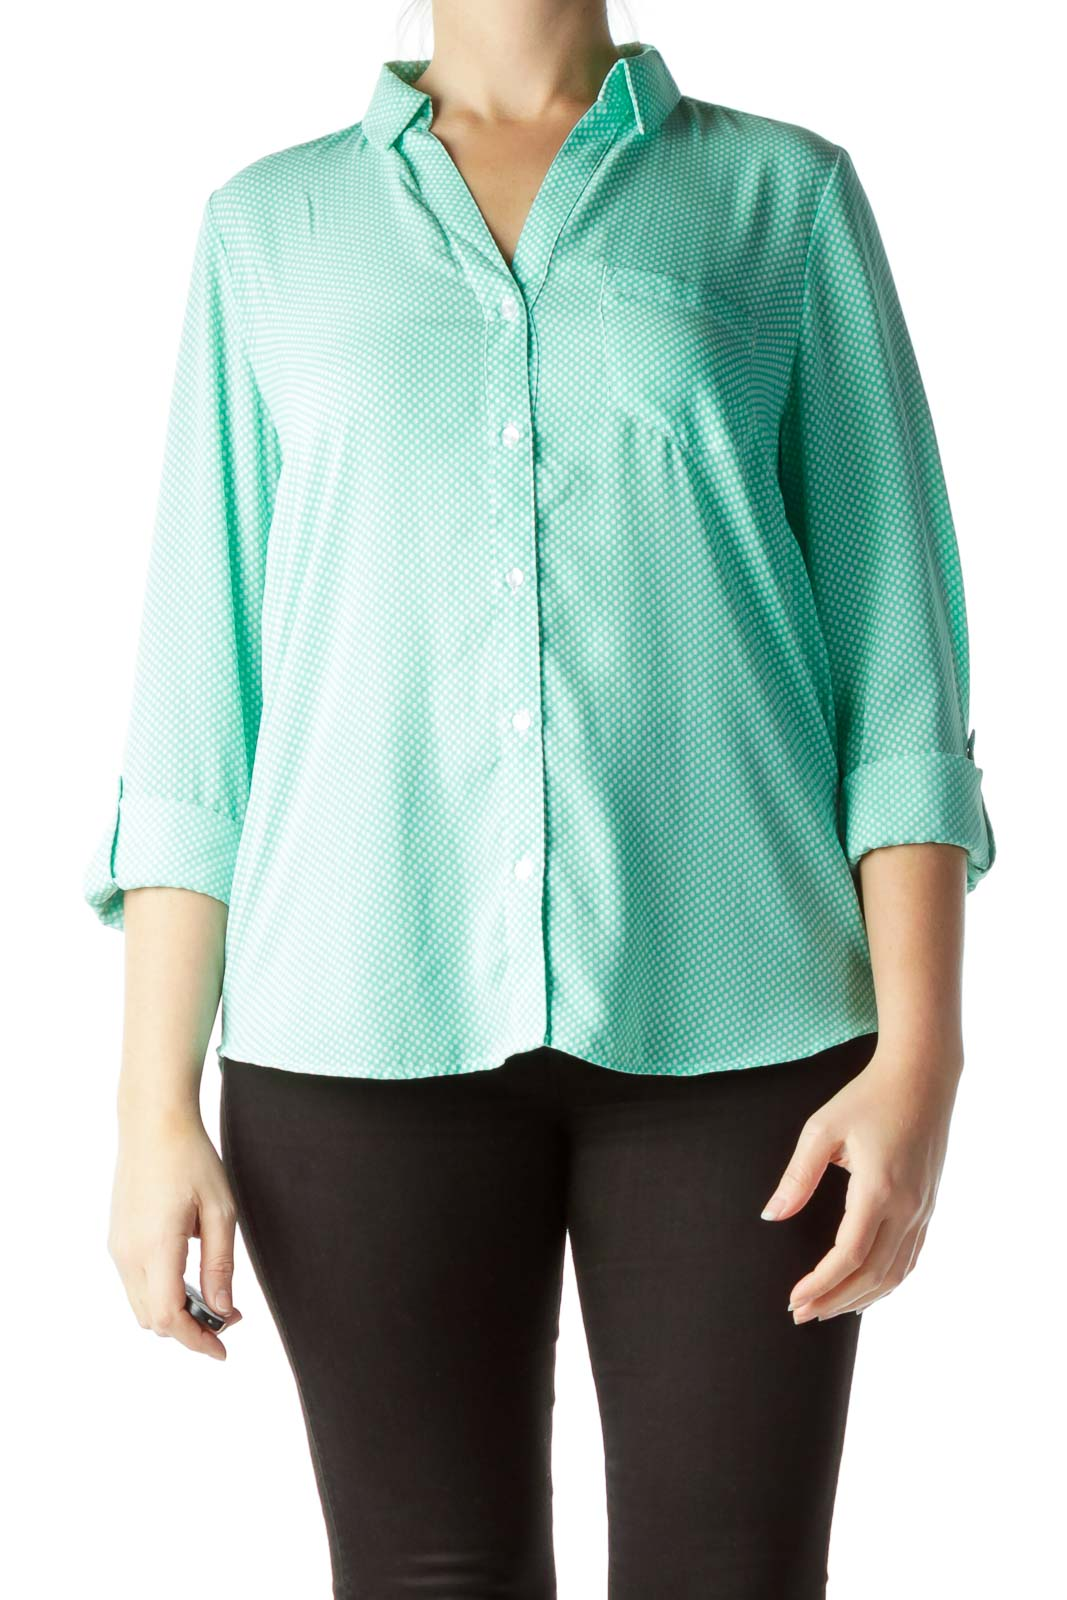 Mint Green White Polka-Dot Blouse